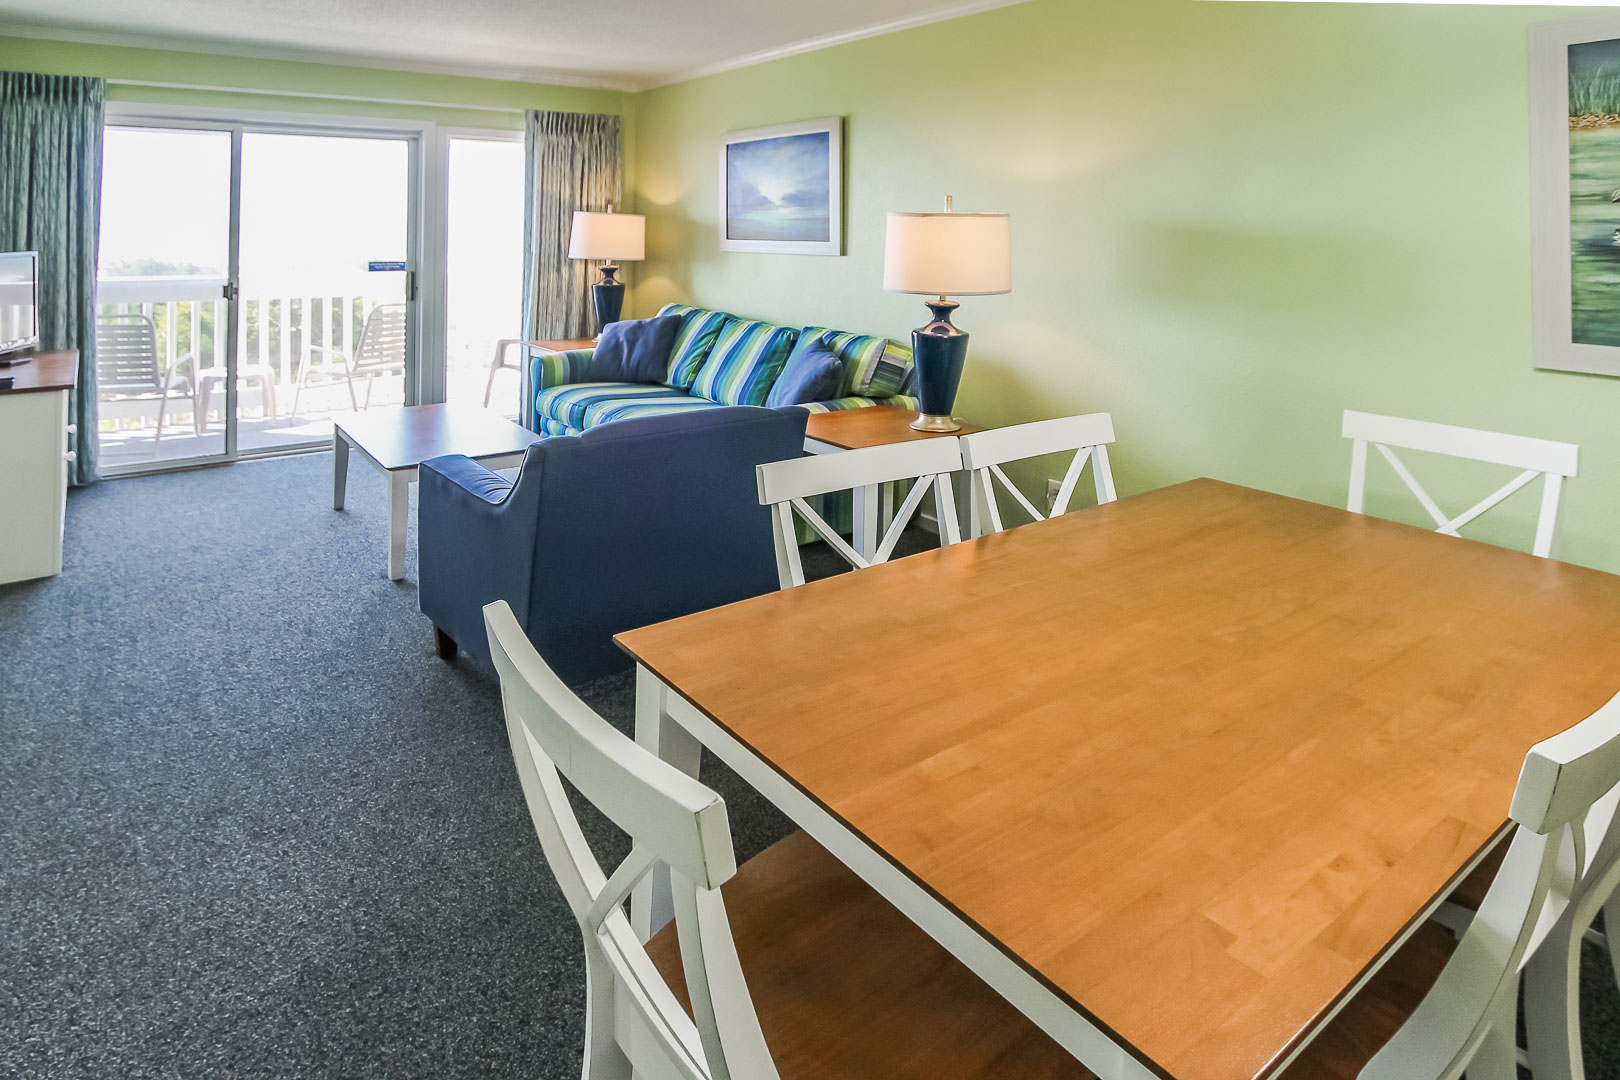 A colorful living area and dining room at VRI's A Place at the Beach III in North Carolina